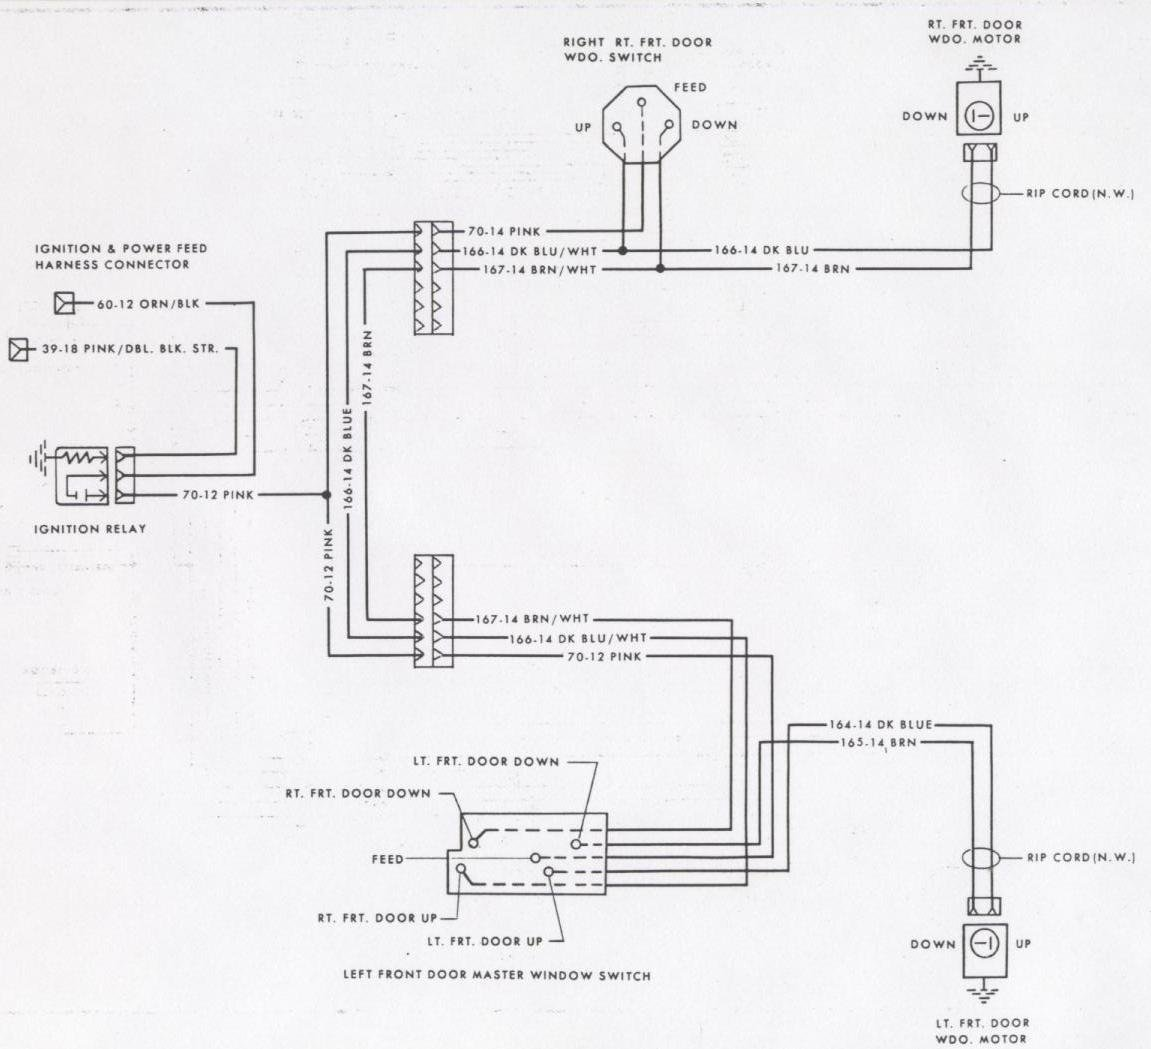 1969 camaro dash wiring diagram as well 1969 camaro horn wiring